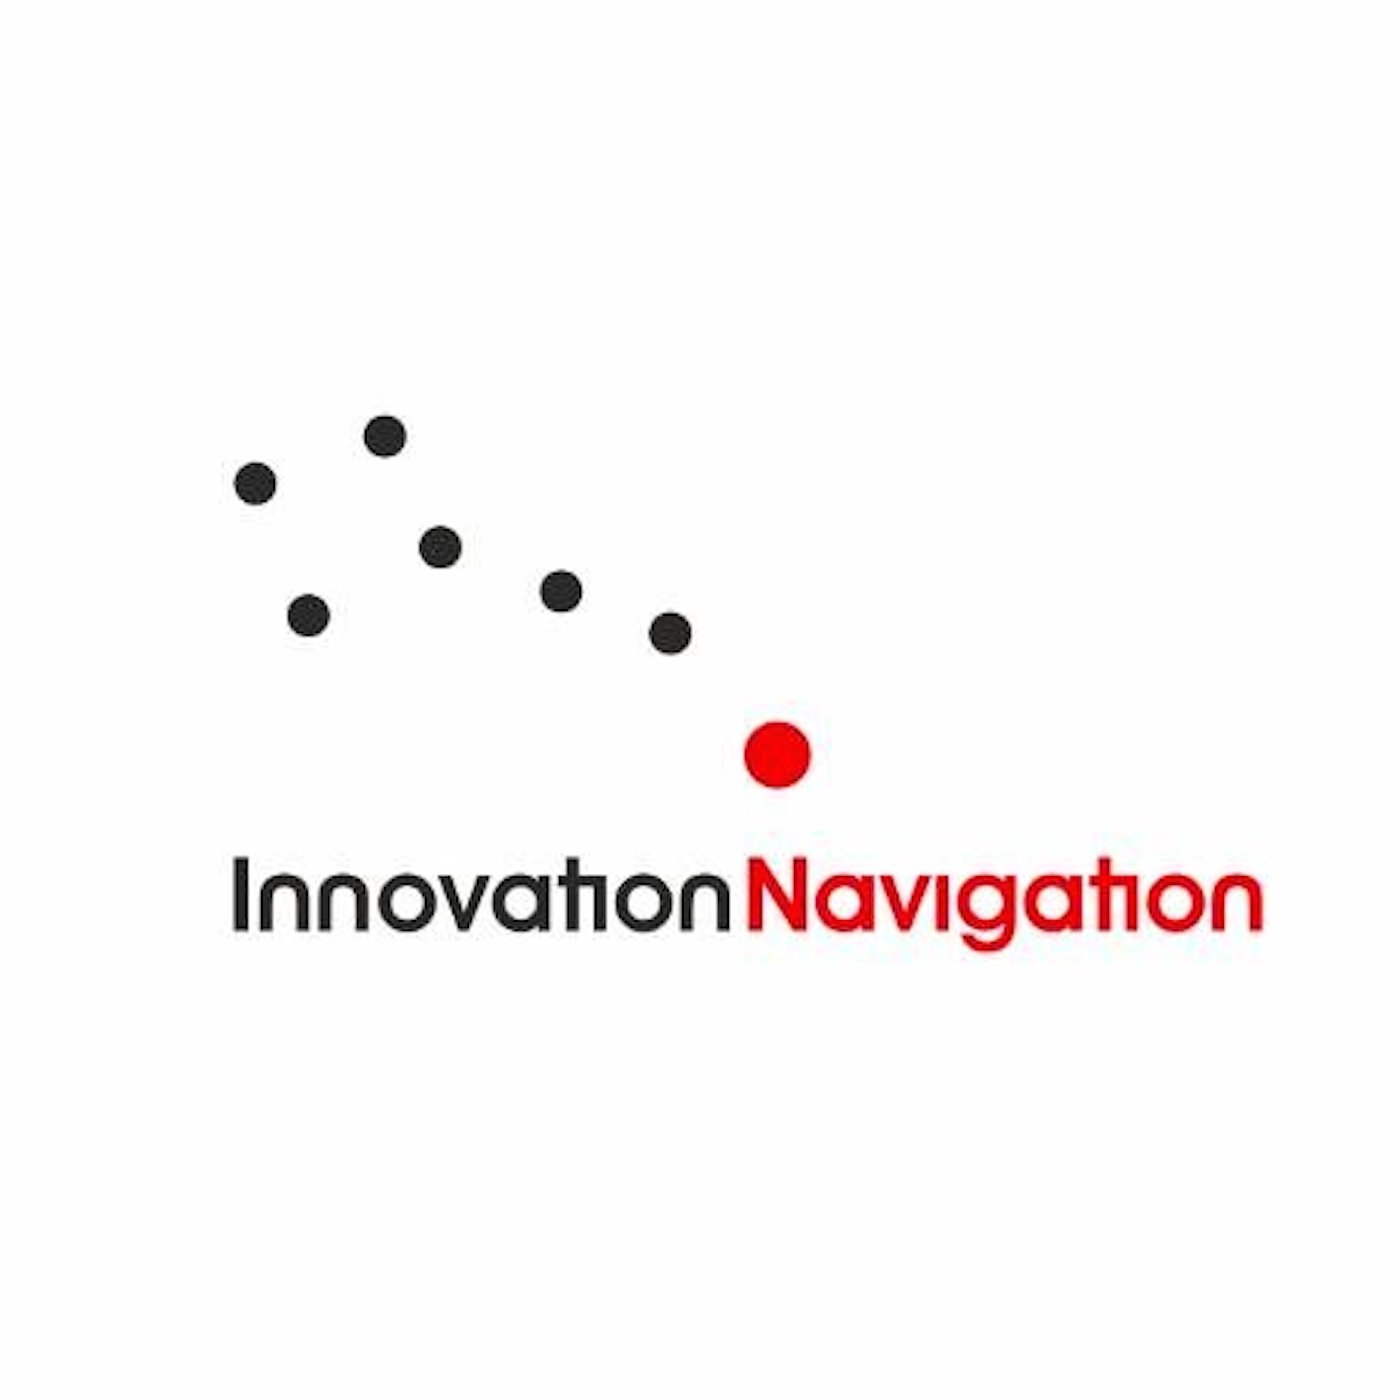 12/18/15 - Innovation In The Food Industry